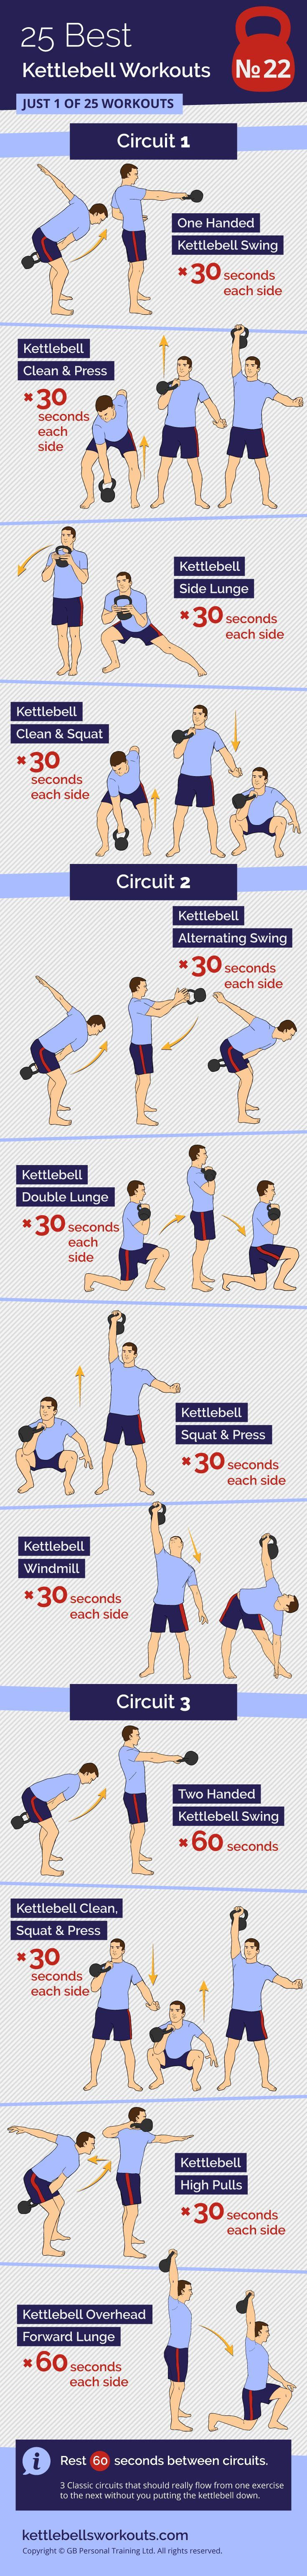 3 classic kettlebell circuits that each last only 4 minutes. Each kettlebell exercise flows from one exercise to the next and should be completed without putting the kettlebell down. Great fun and super effective. #kettlebell #circuit #workout #fitness